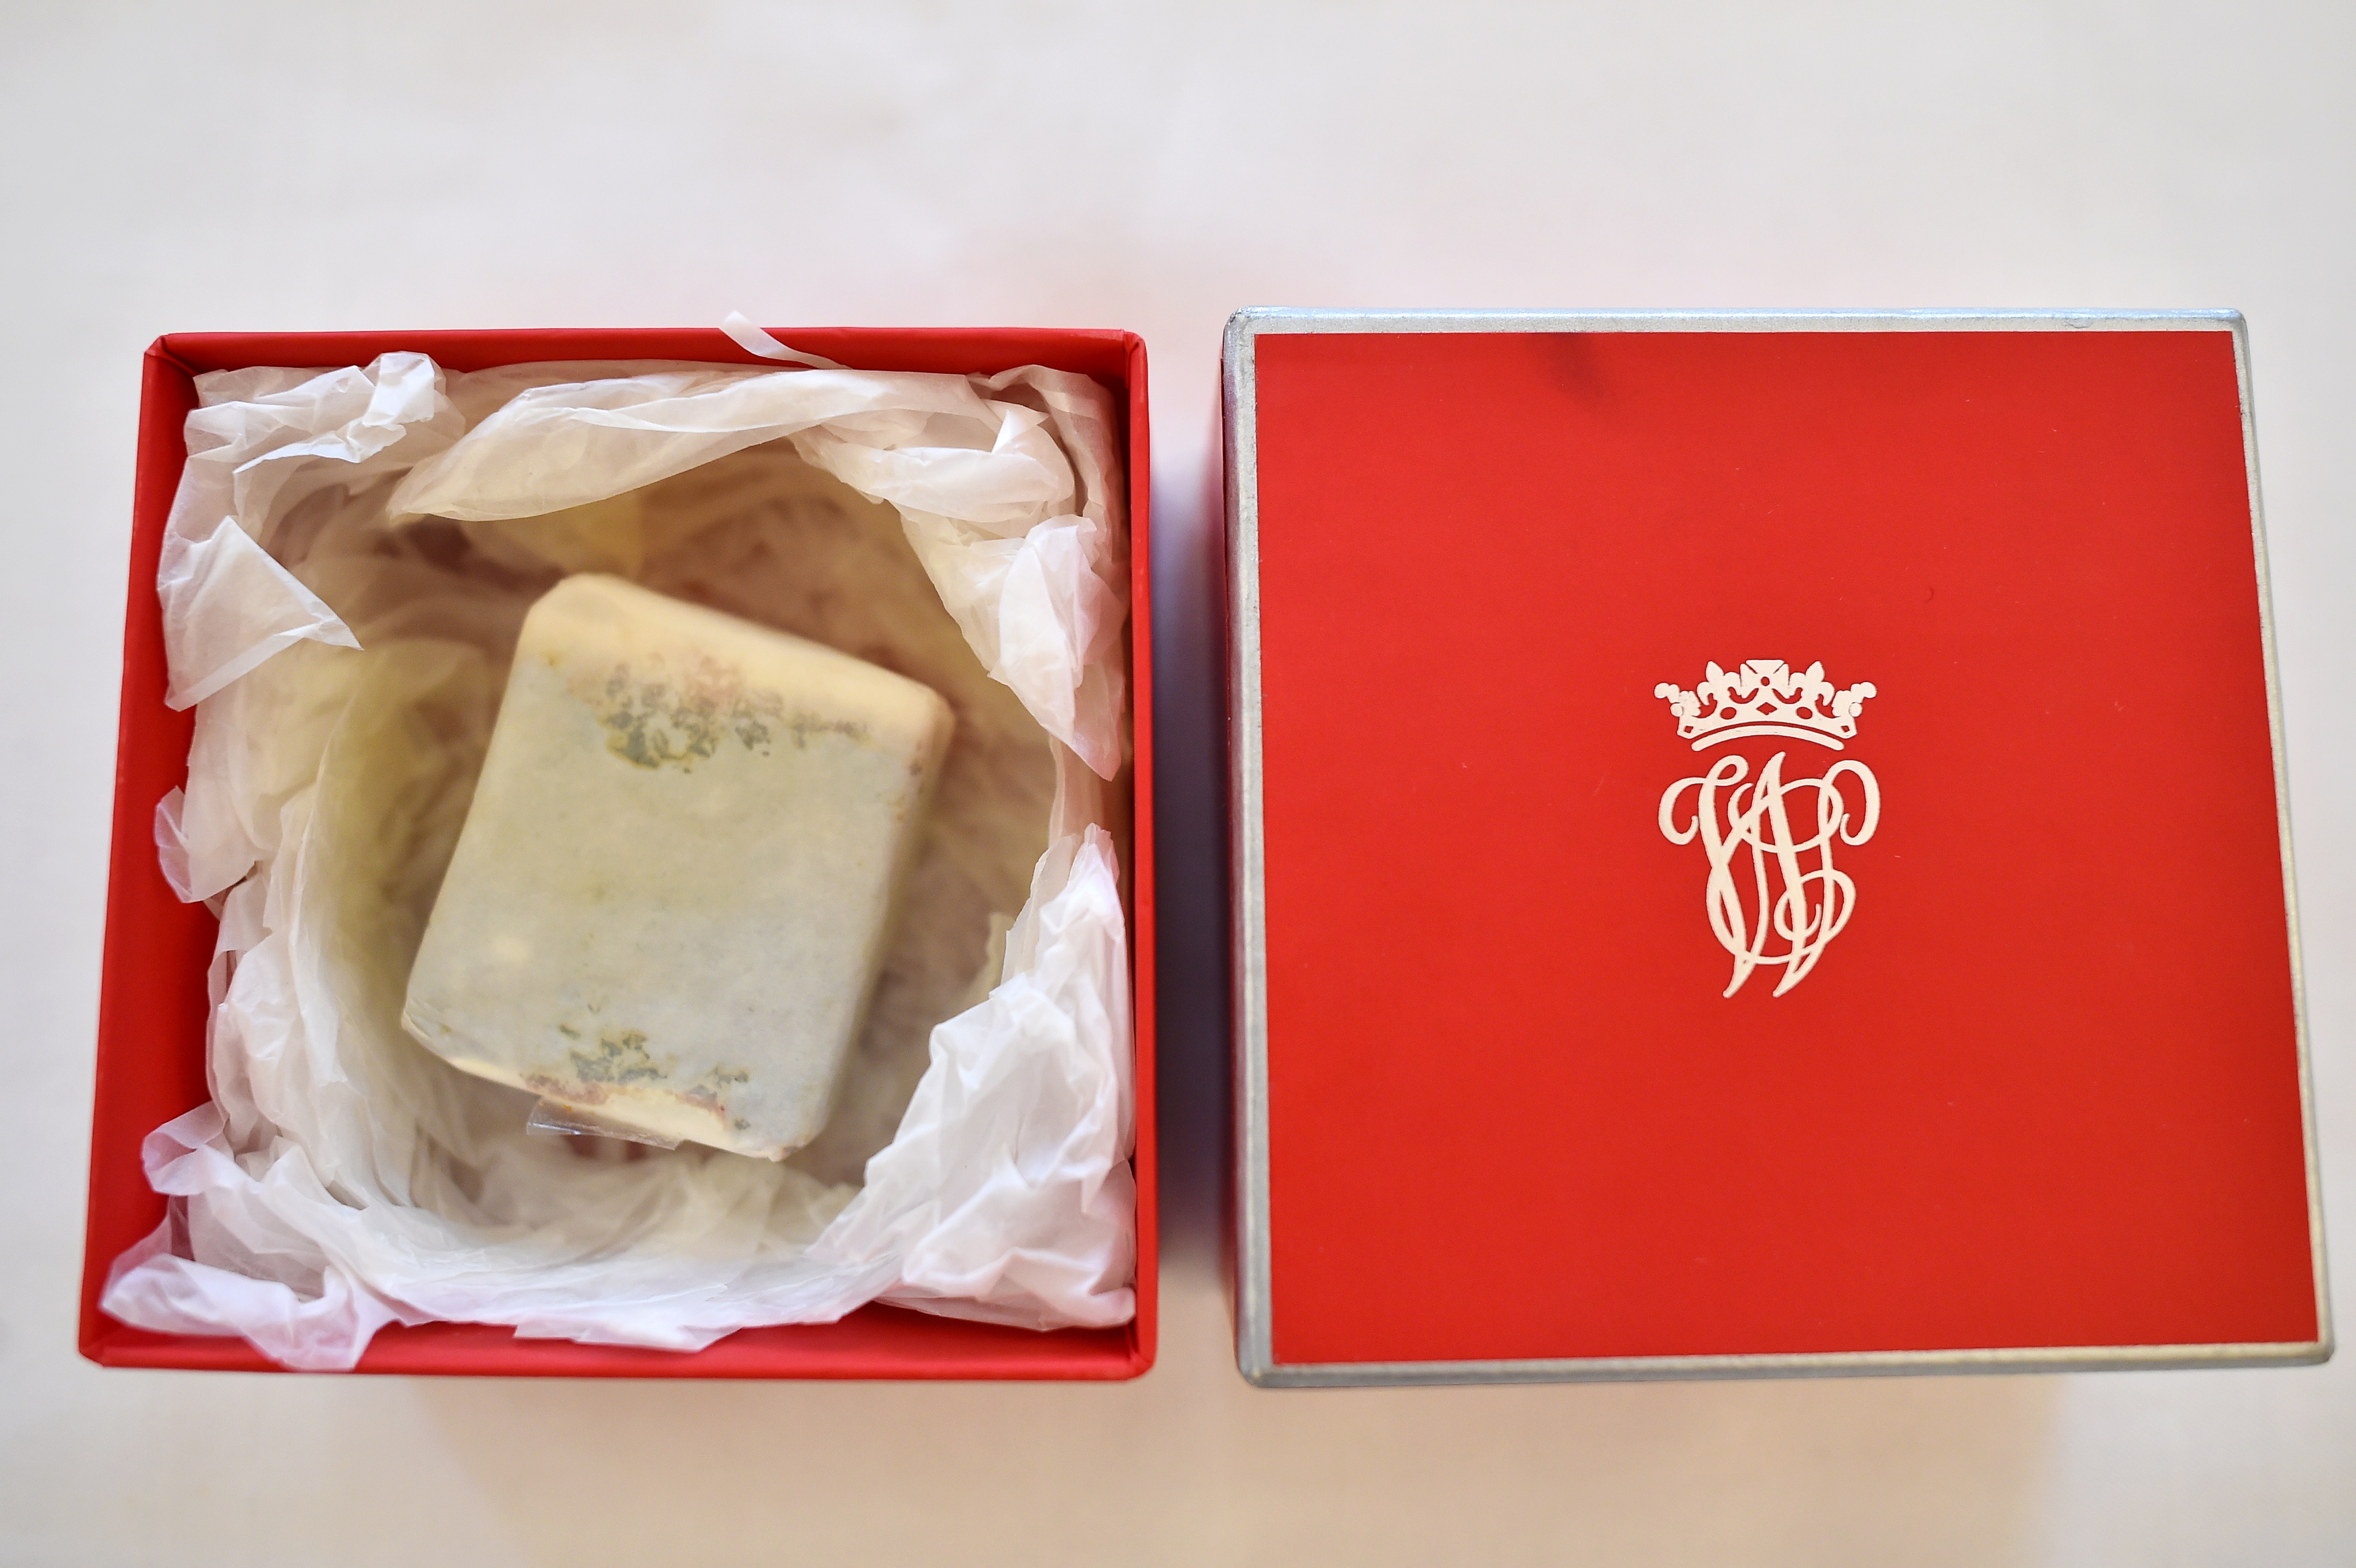 A boxed slice of wedding cake, from the British Royal wedding of Prince William, Duke of Cambridge to Britain's Catherine, Duchess of Cambridge, collected by Leonard Massey, the former first chauffeur to Britain's Queen Elizabeth II, is displayed at the Stafford Hotel in London on June 5, 2015, ahead of its auction in Beverly Hills, US, on June 27.